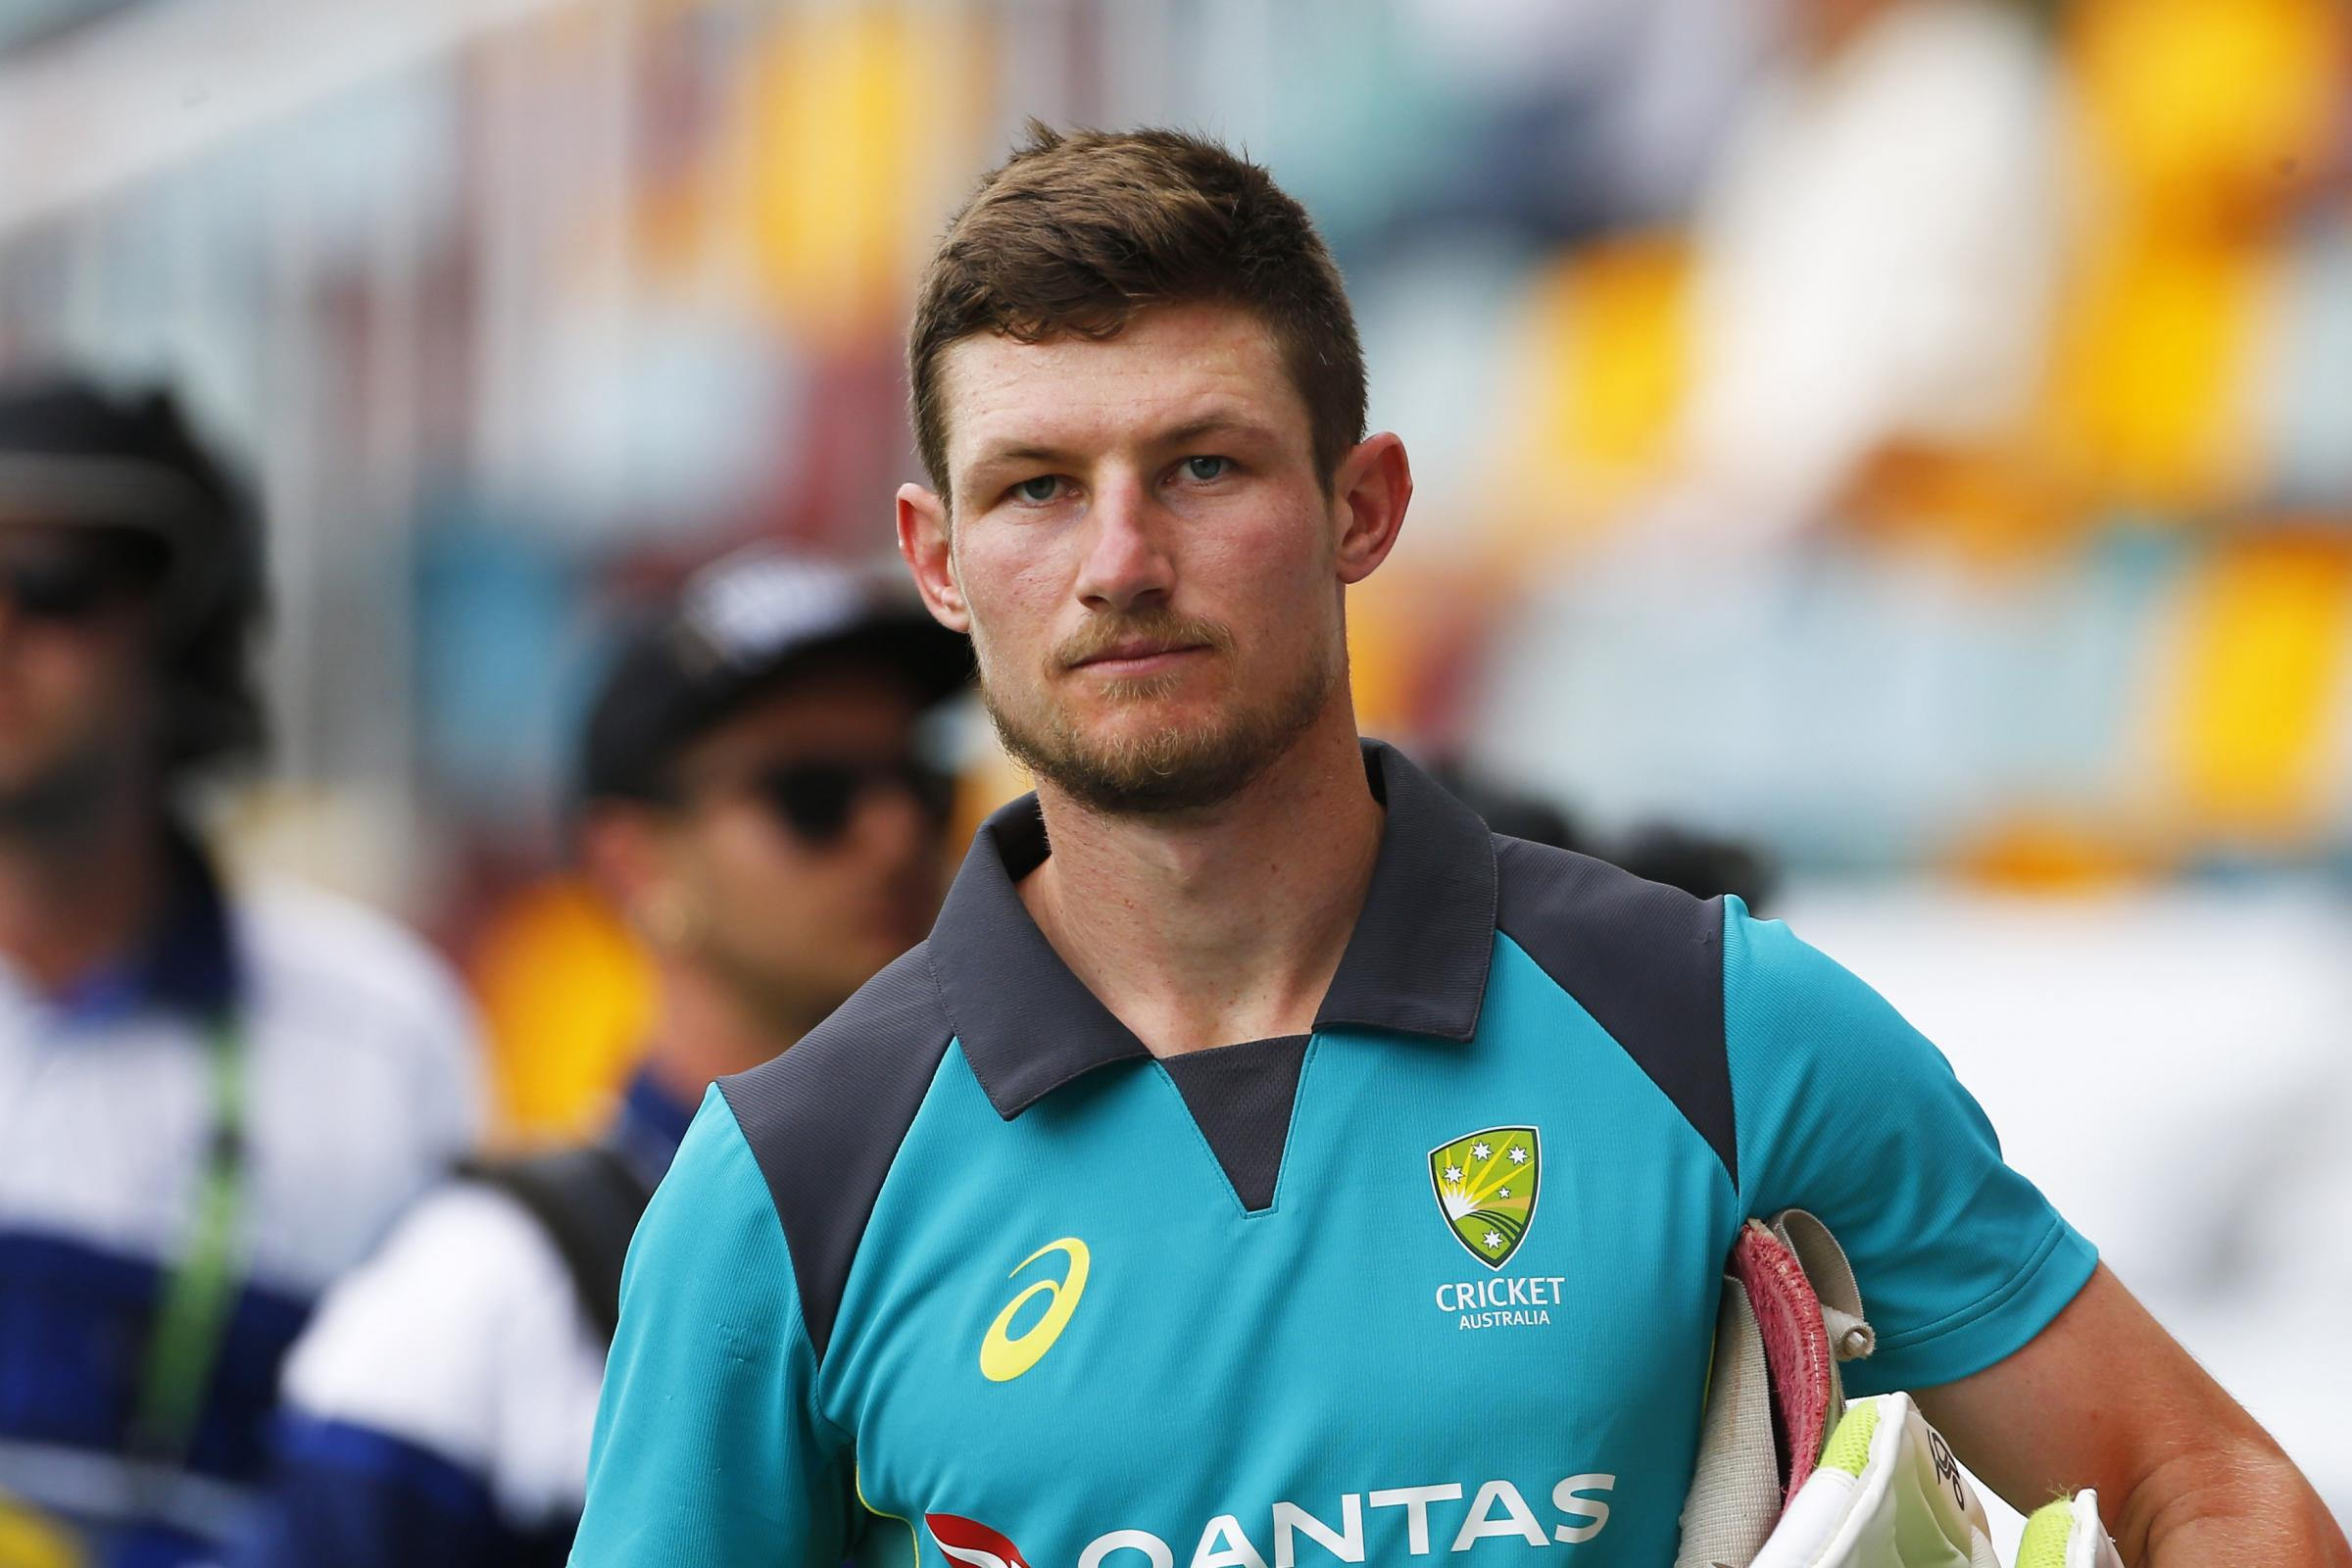 Cameron Bancroft has signed for Durham